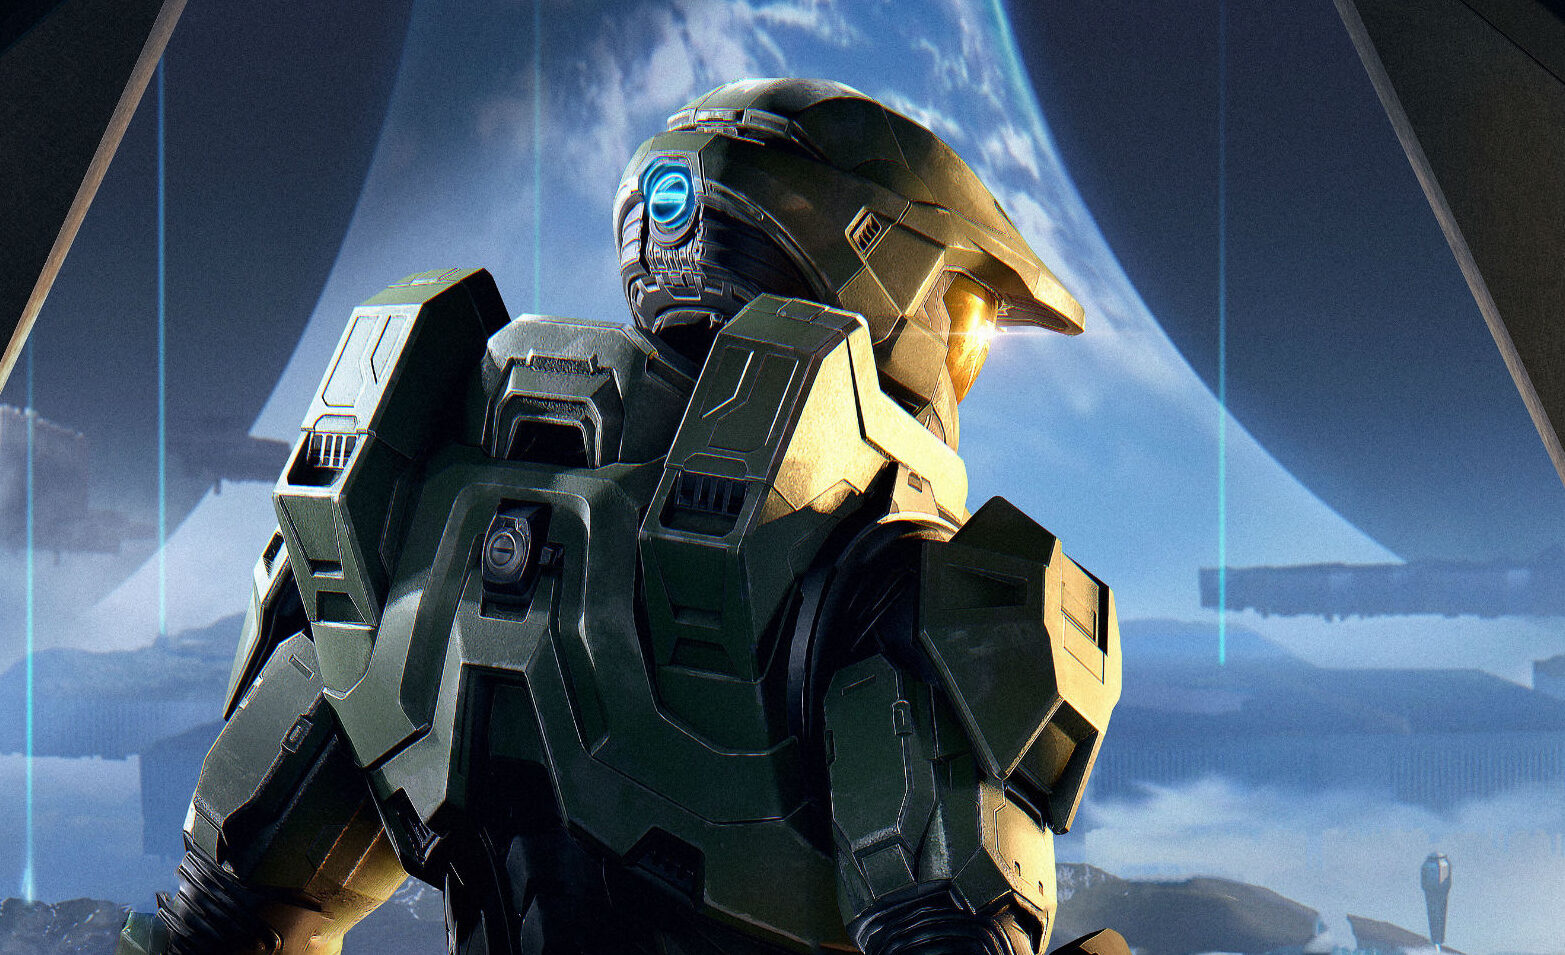 New 'Halo' project in the works at 343 Industries